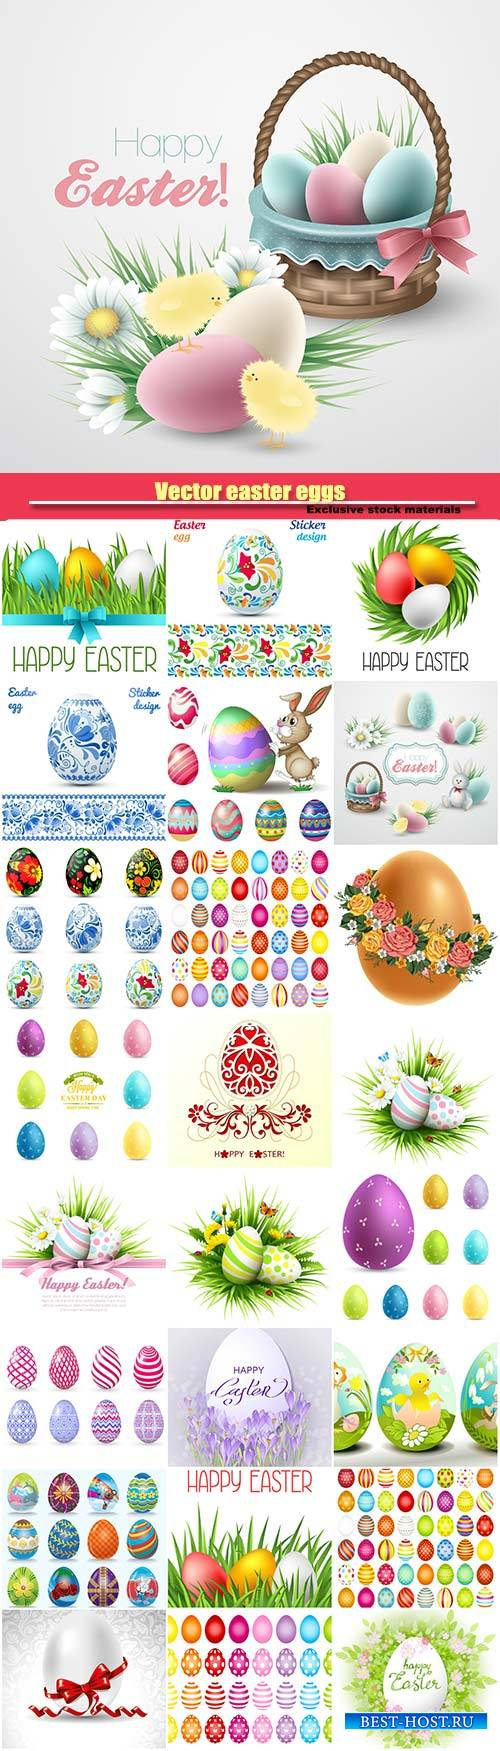 Vector easter eggs, happy easter holiday vector backgrounds